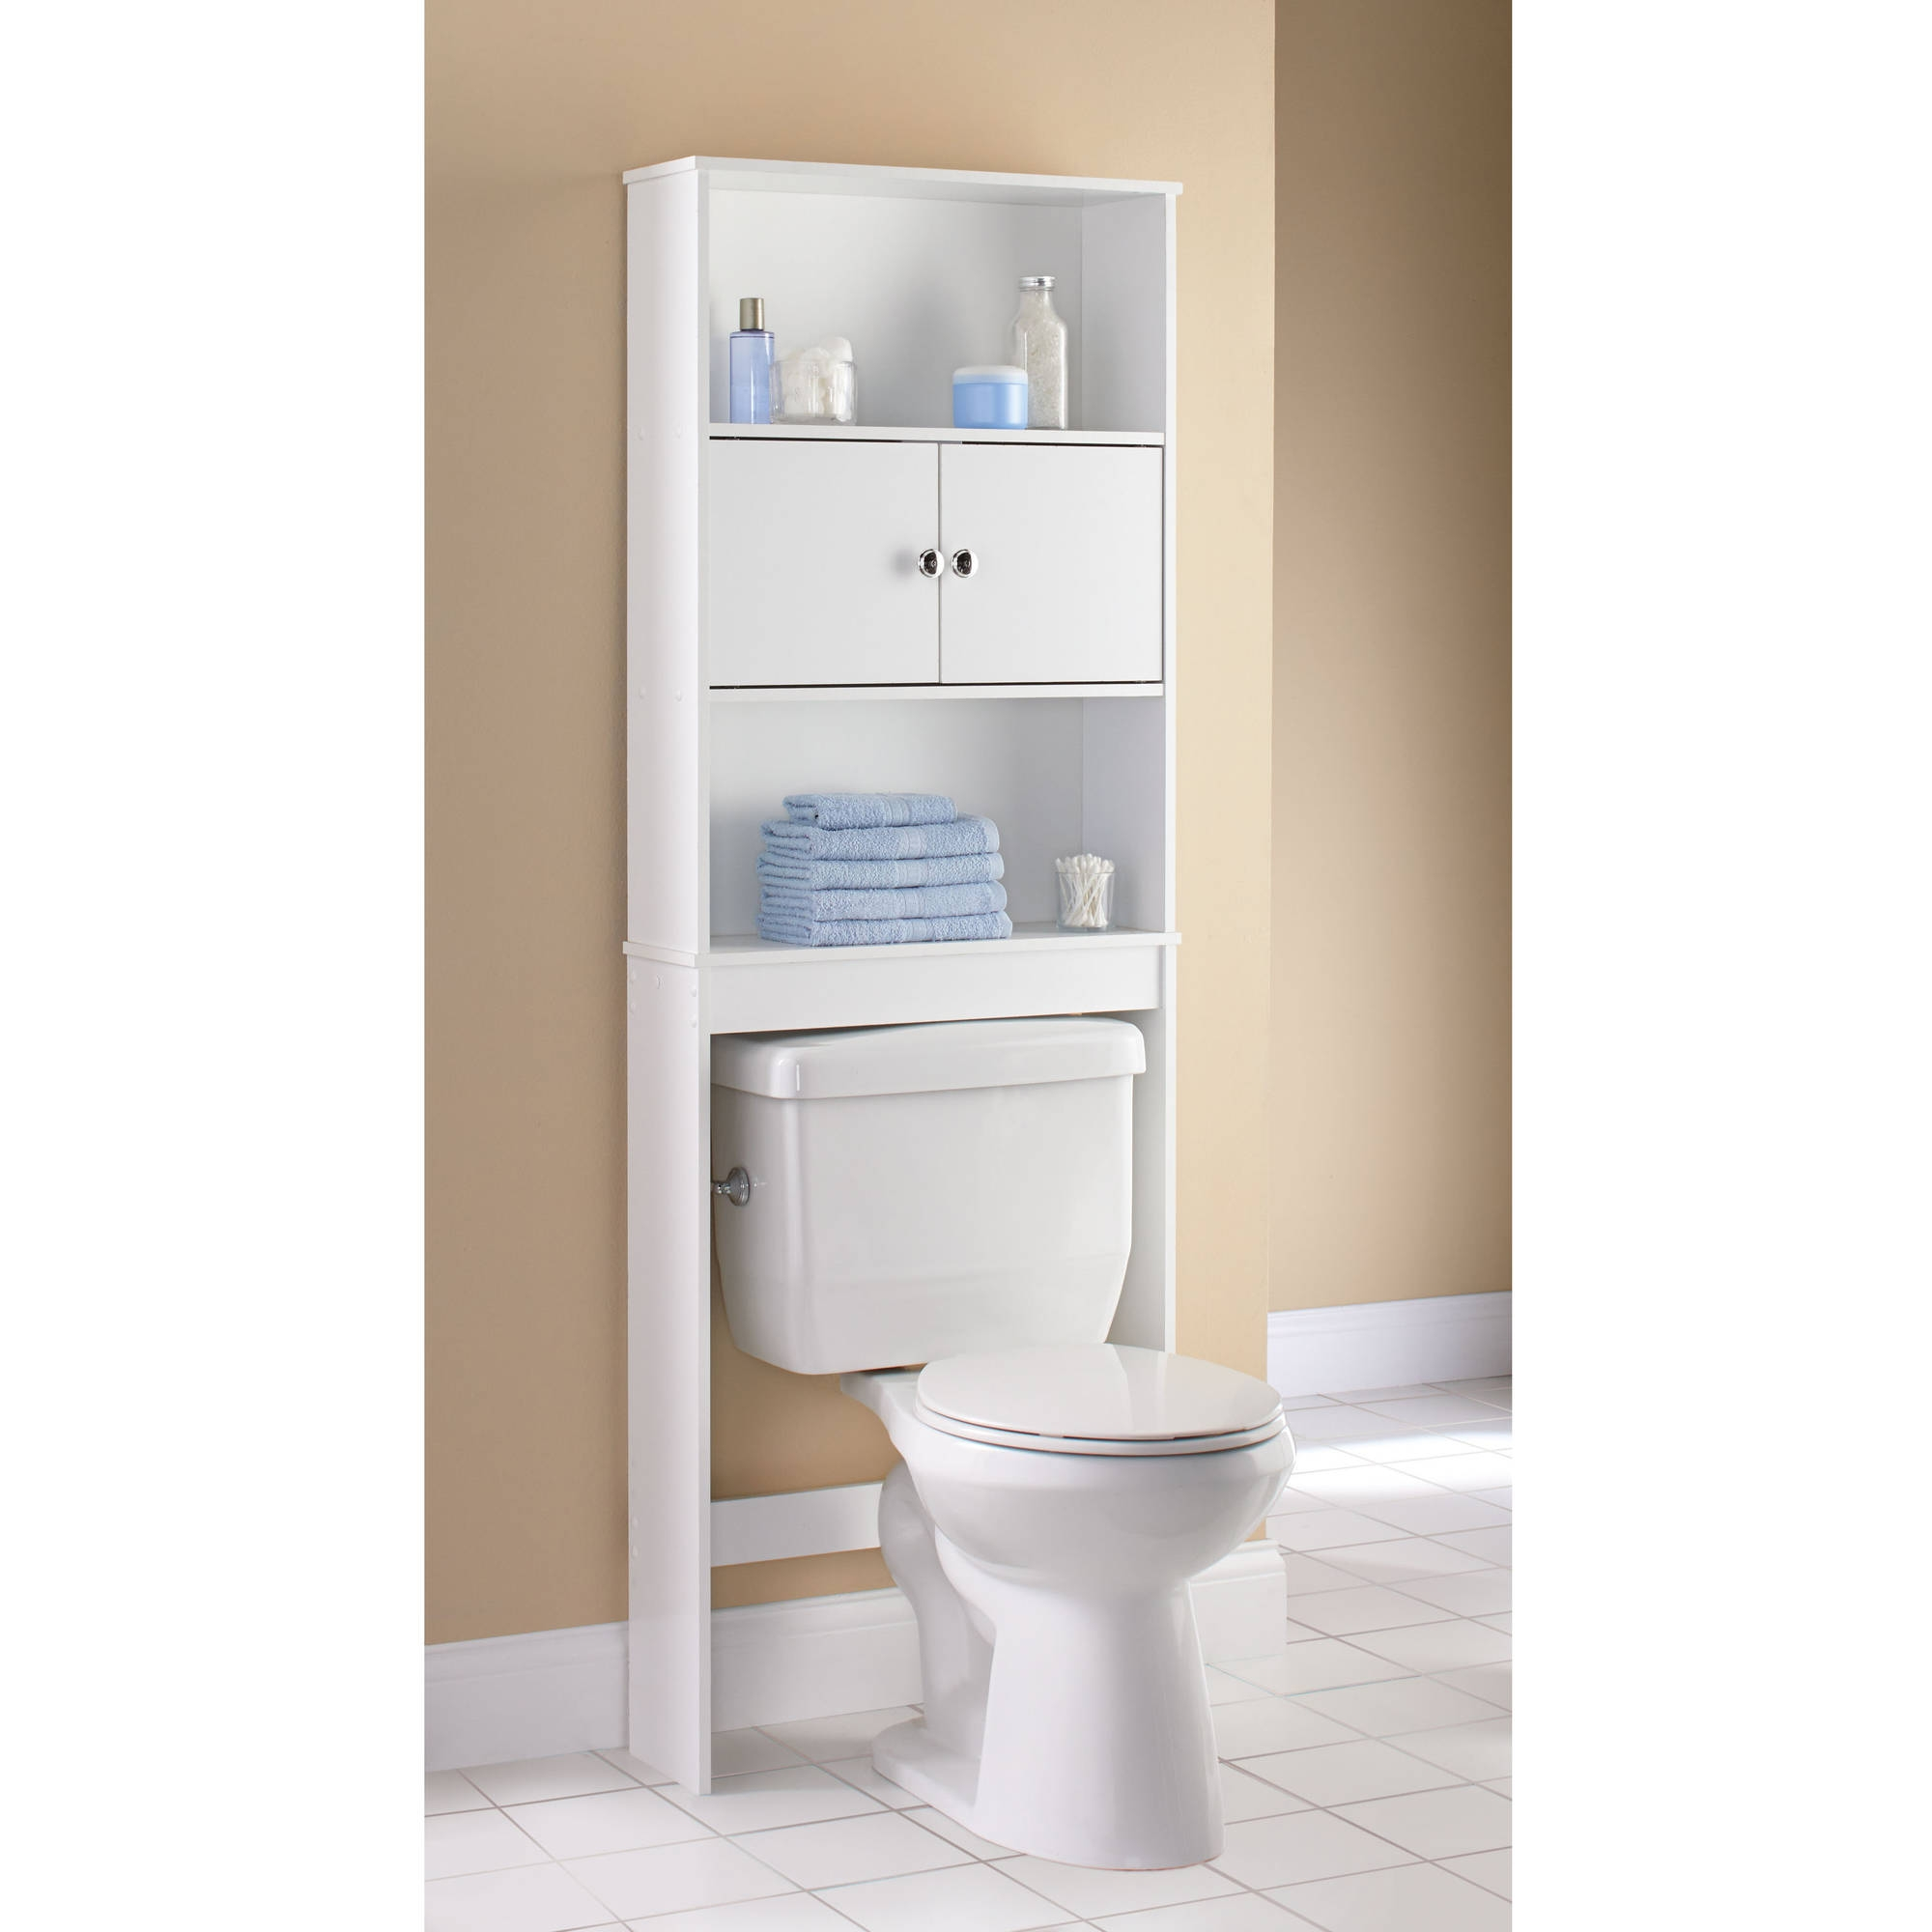 2 Cabinet Bathroom Space Saver Mainstays